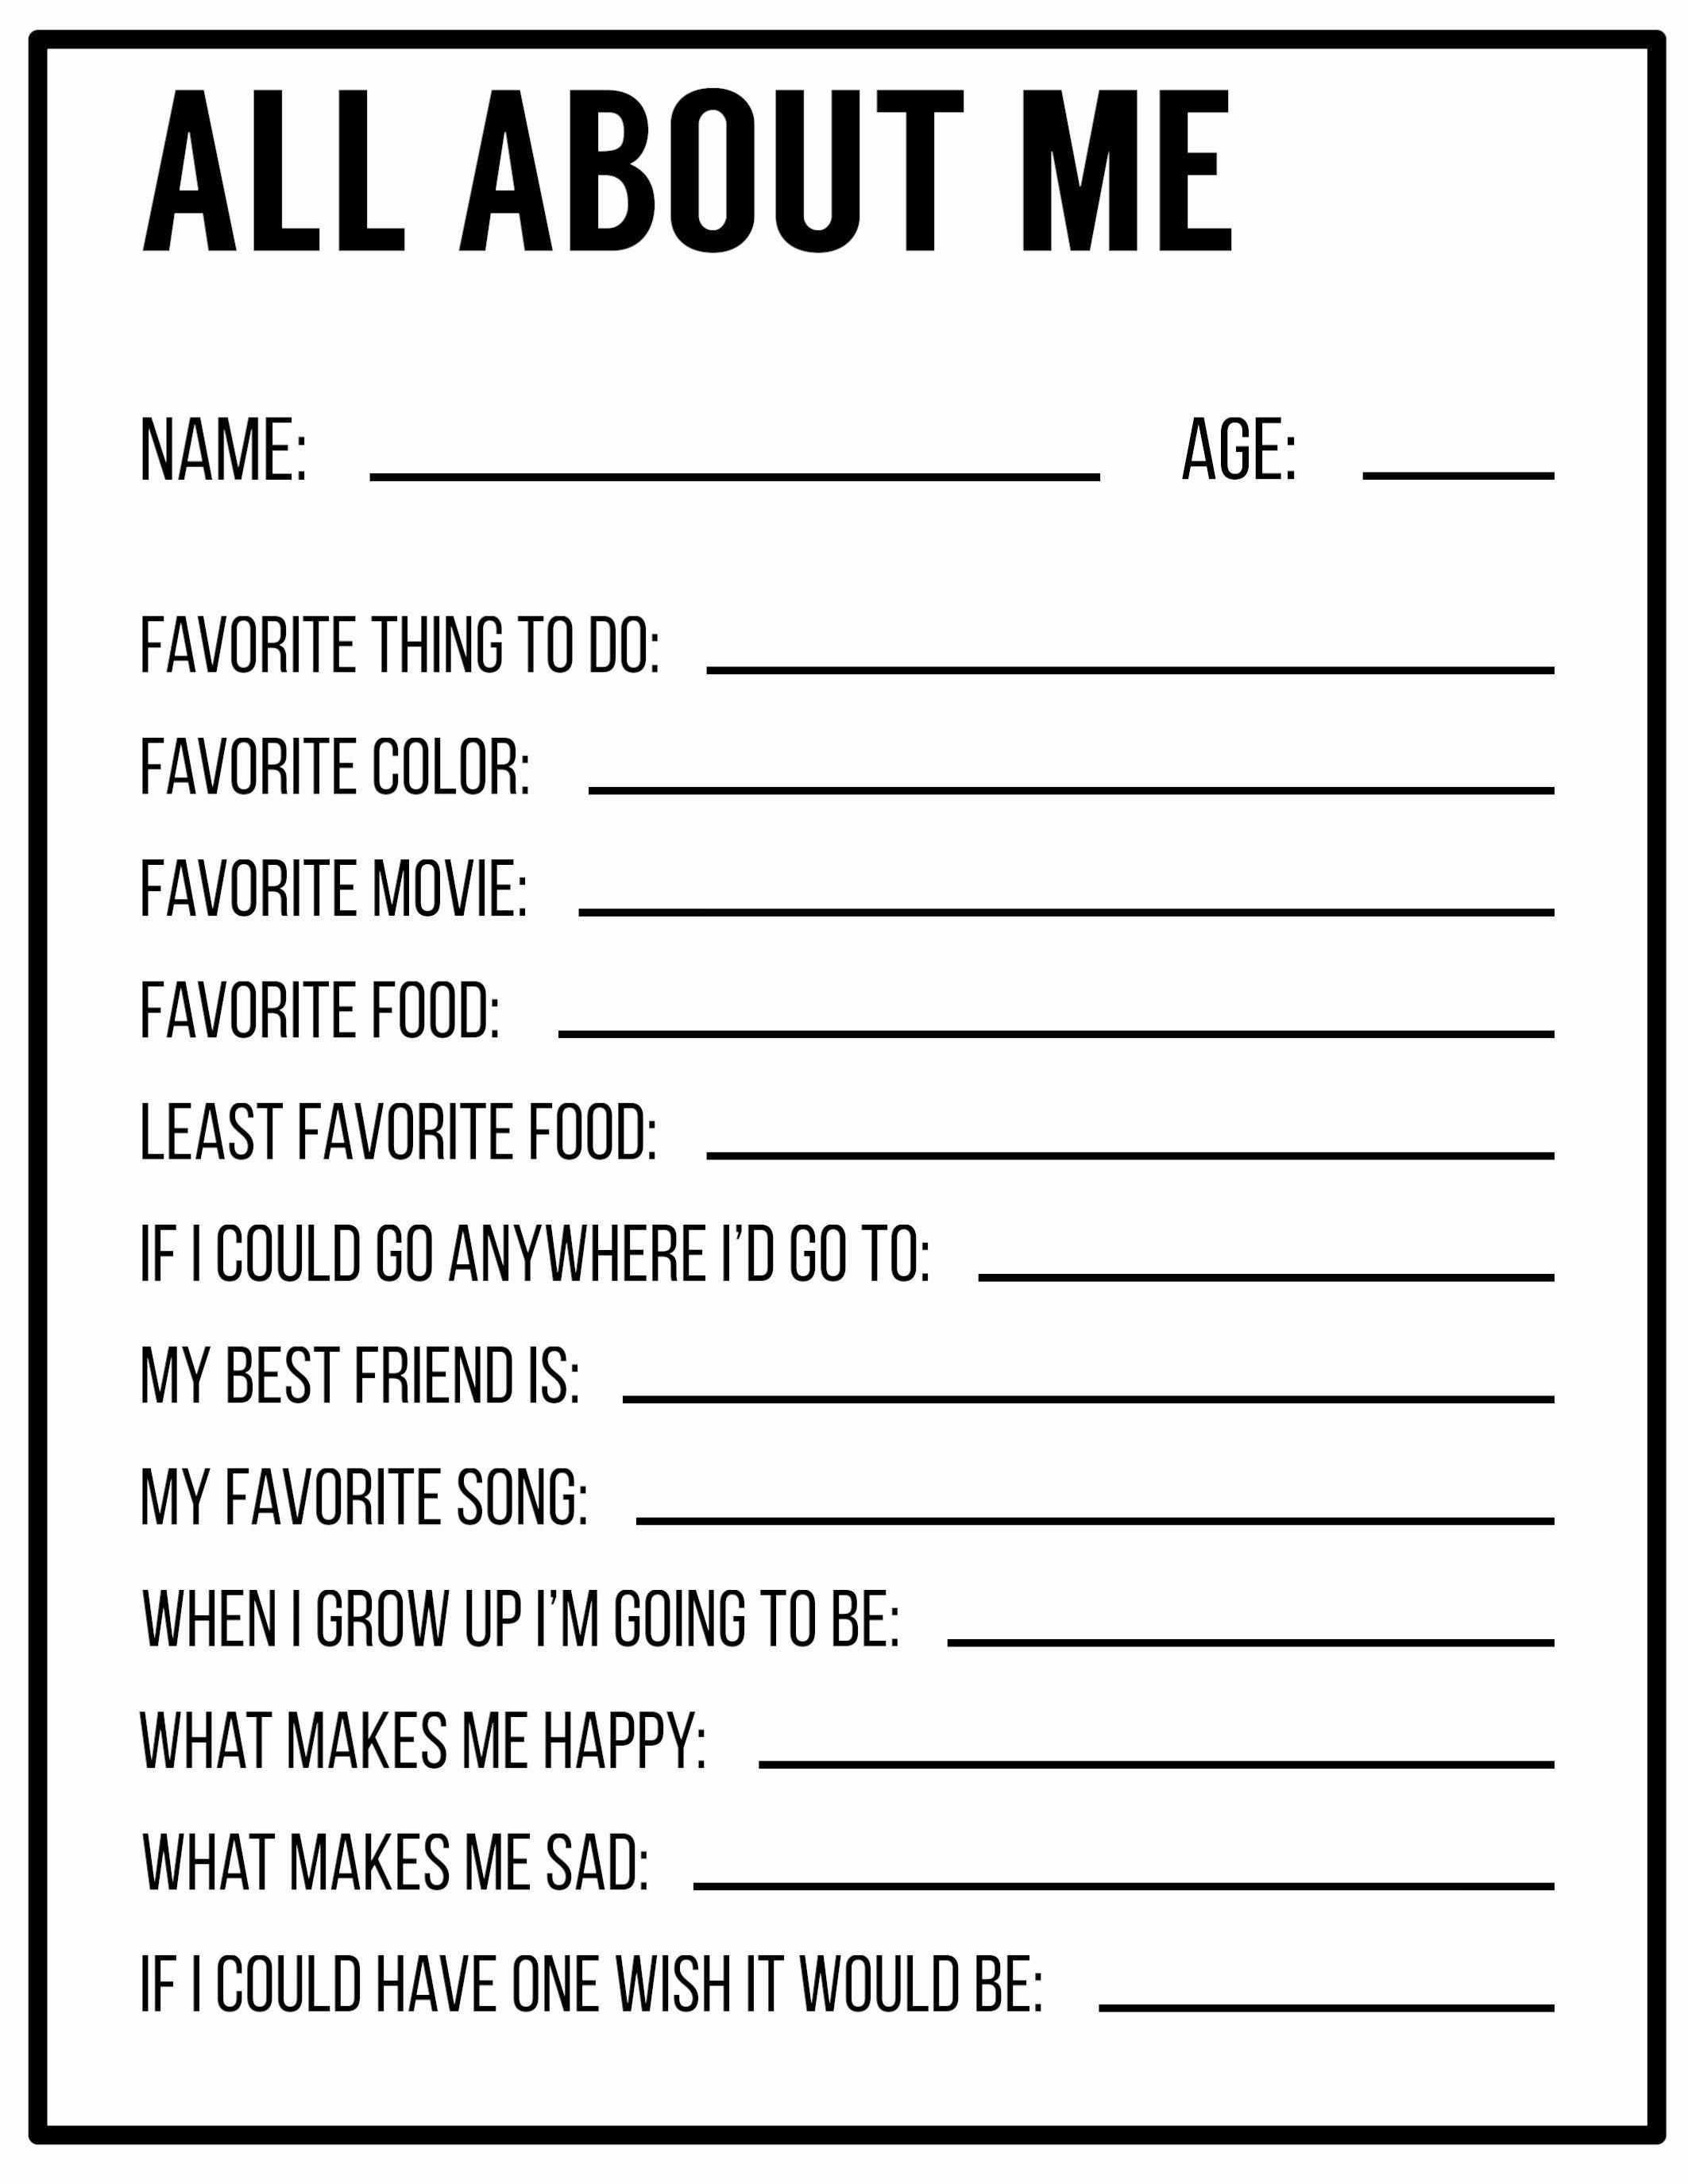 50 All About Me Printable Worksheet In